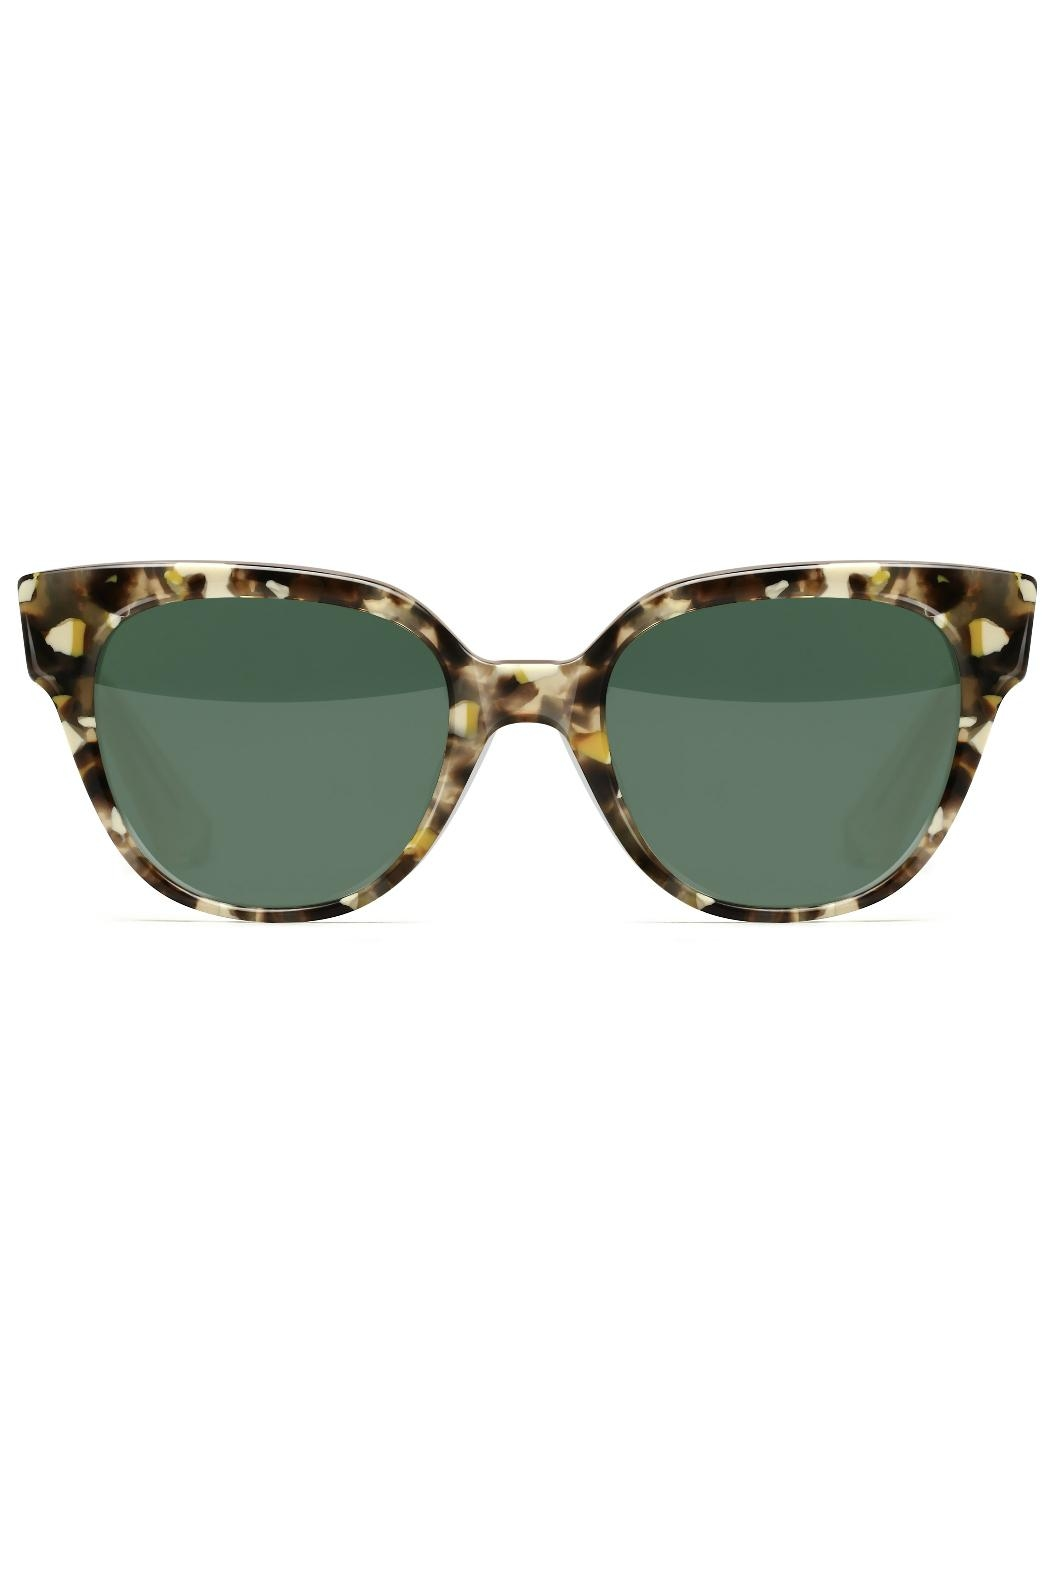 Elizabeth and james Sunglasses Avory Tortoise - Main Image